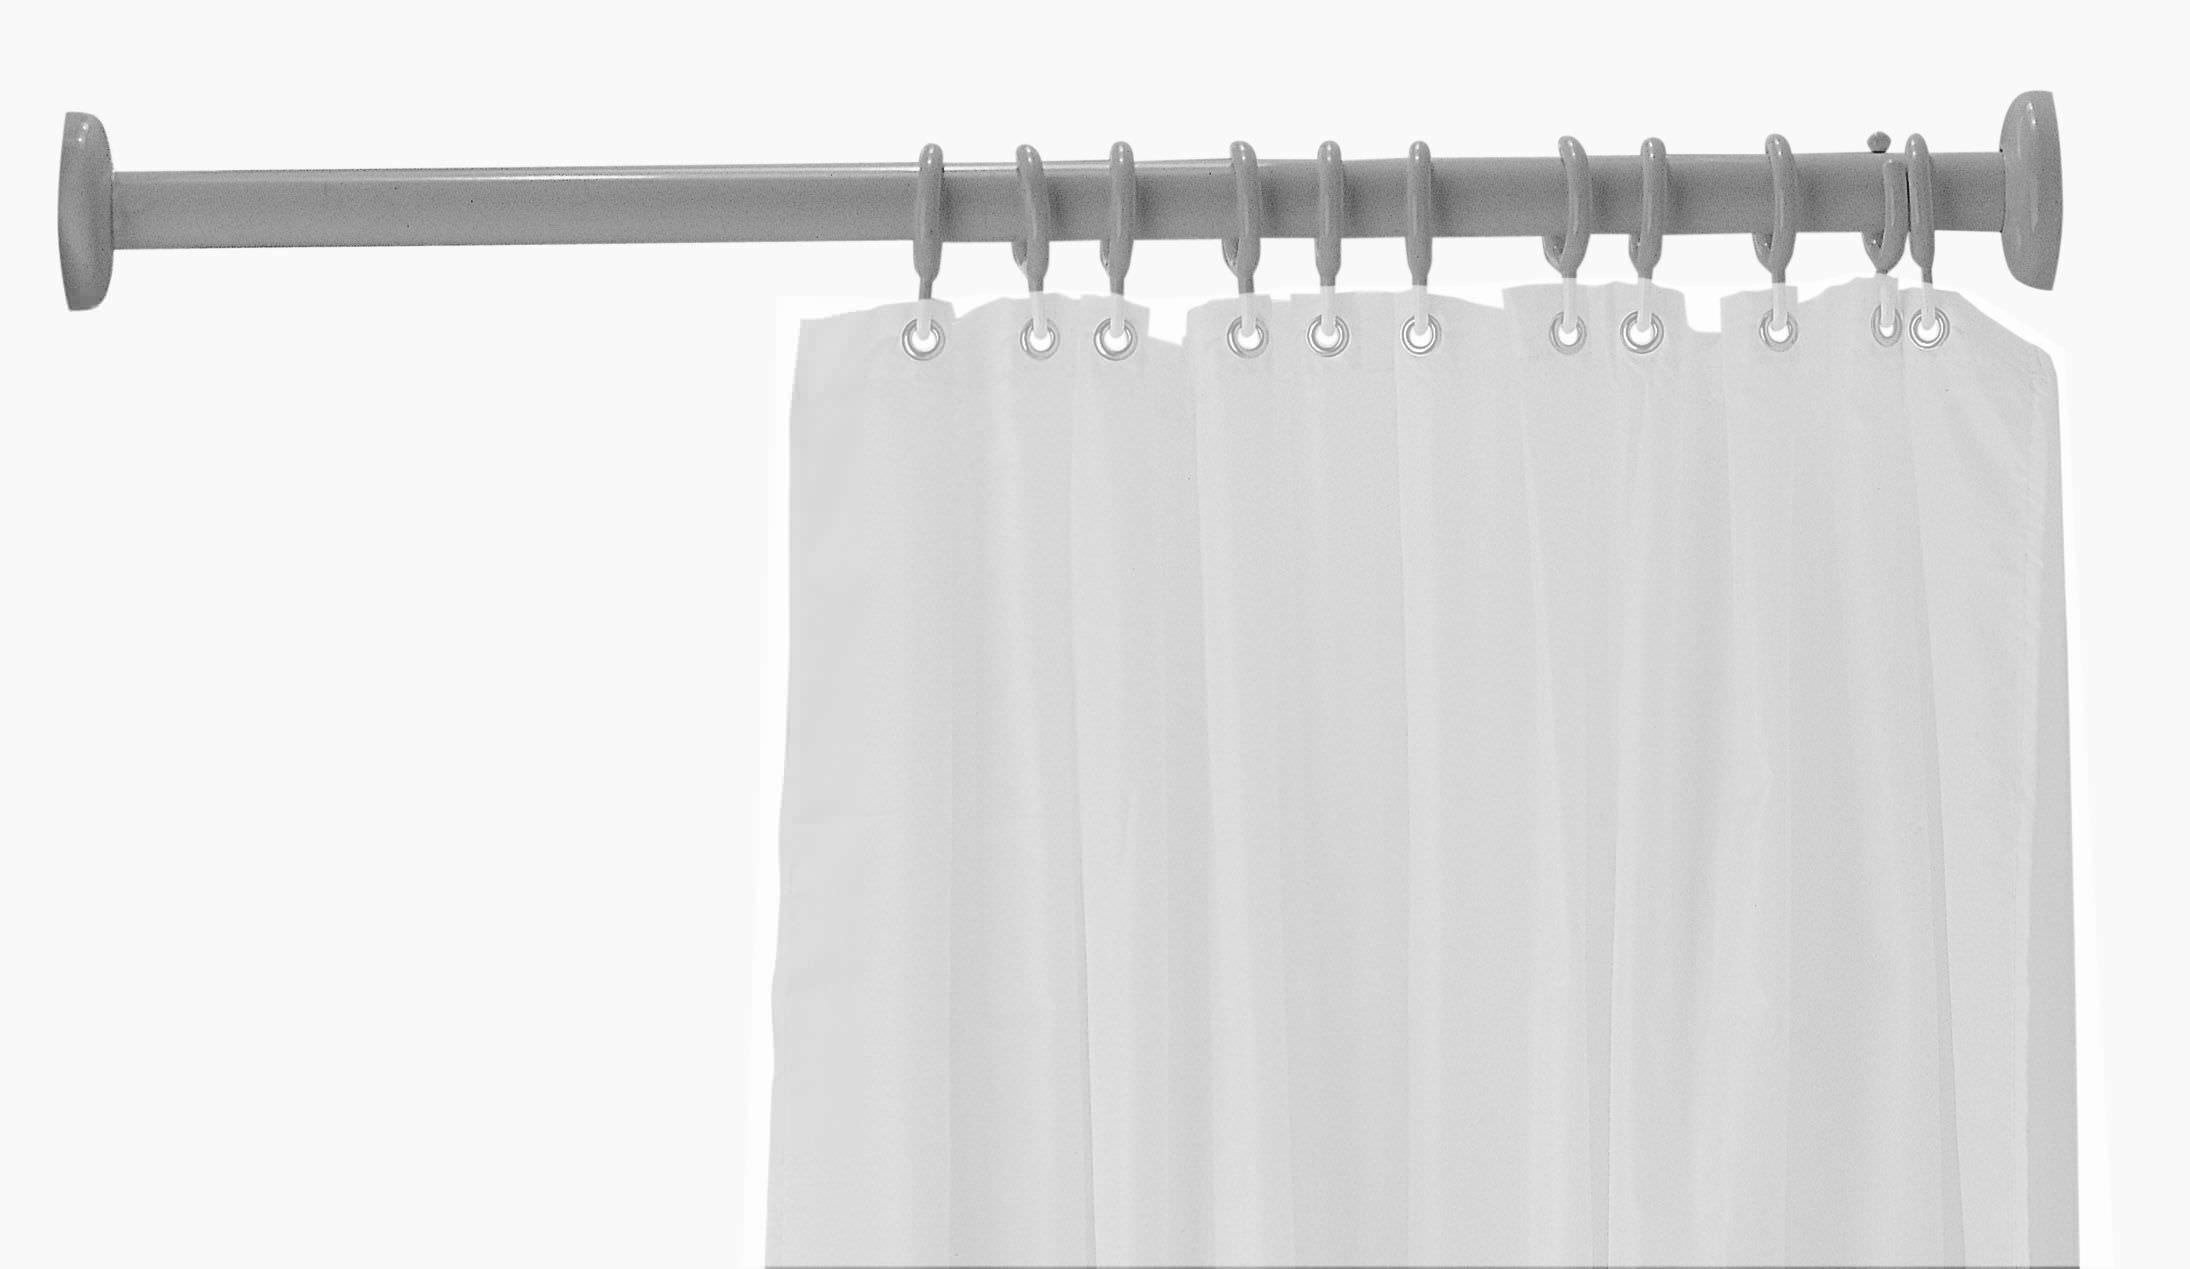 Stainless Steel Shower Curtain Bar Straight Tubocolor